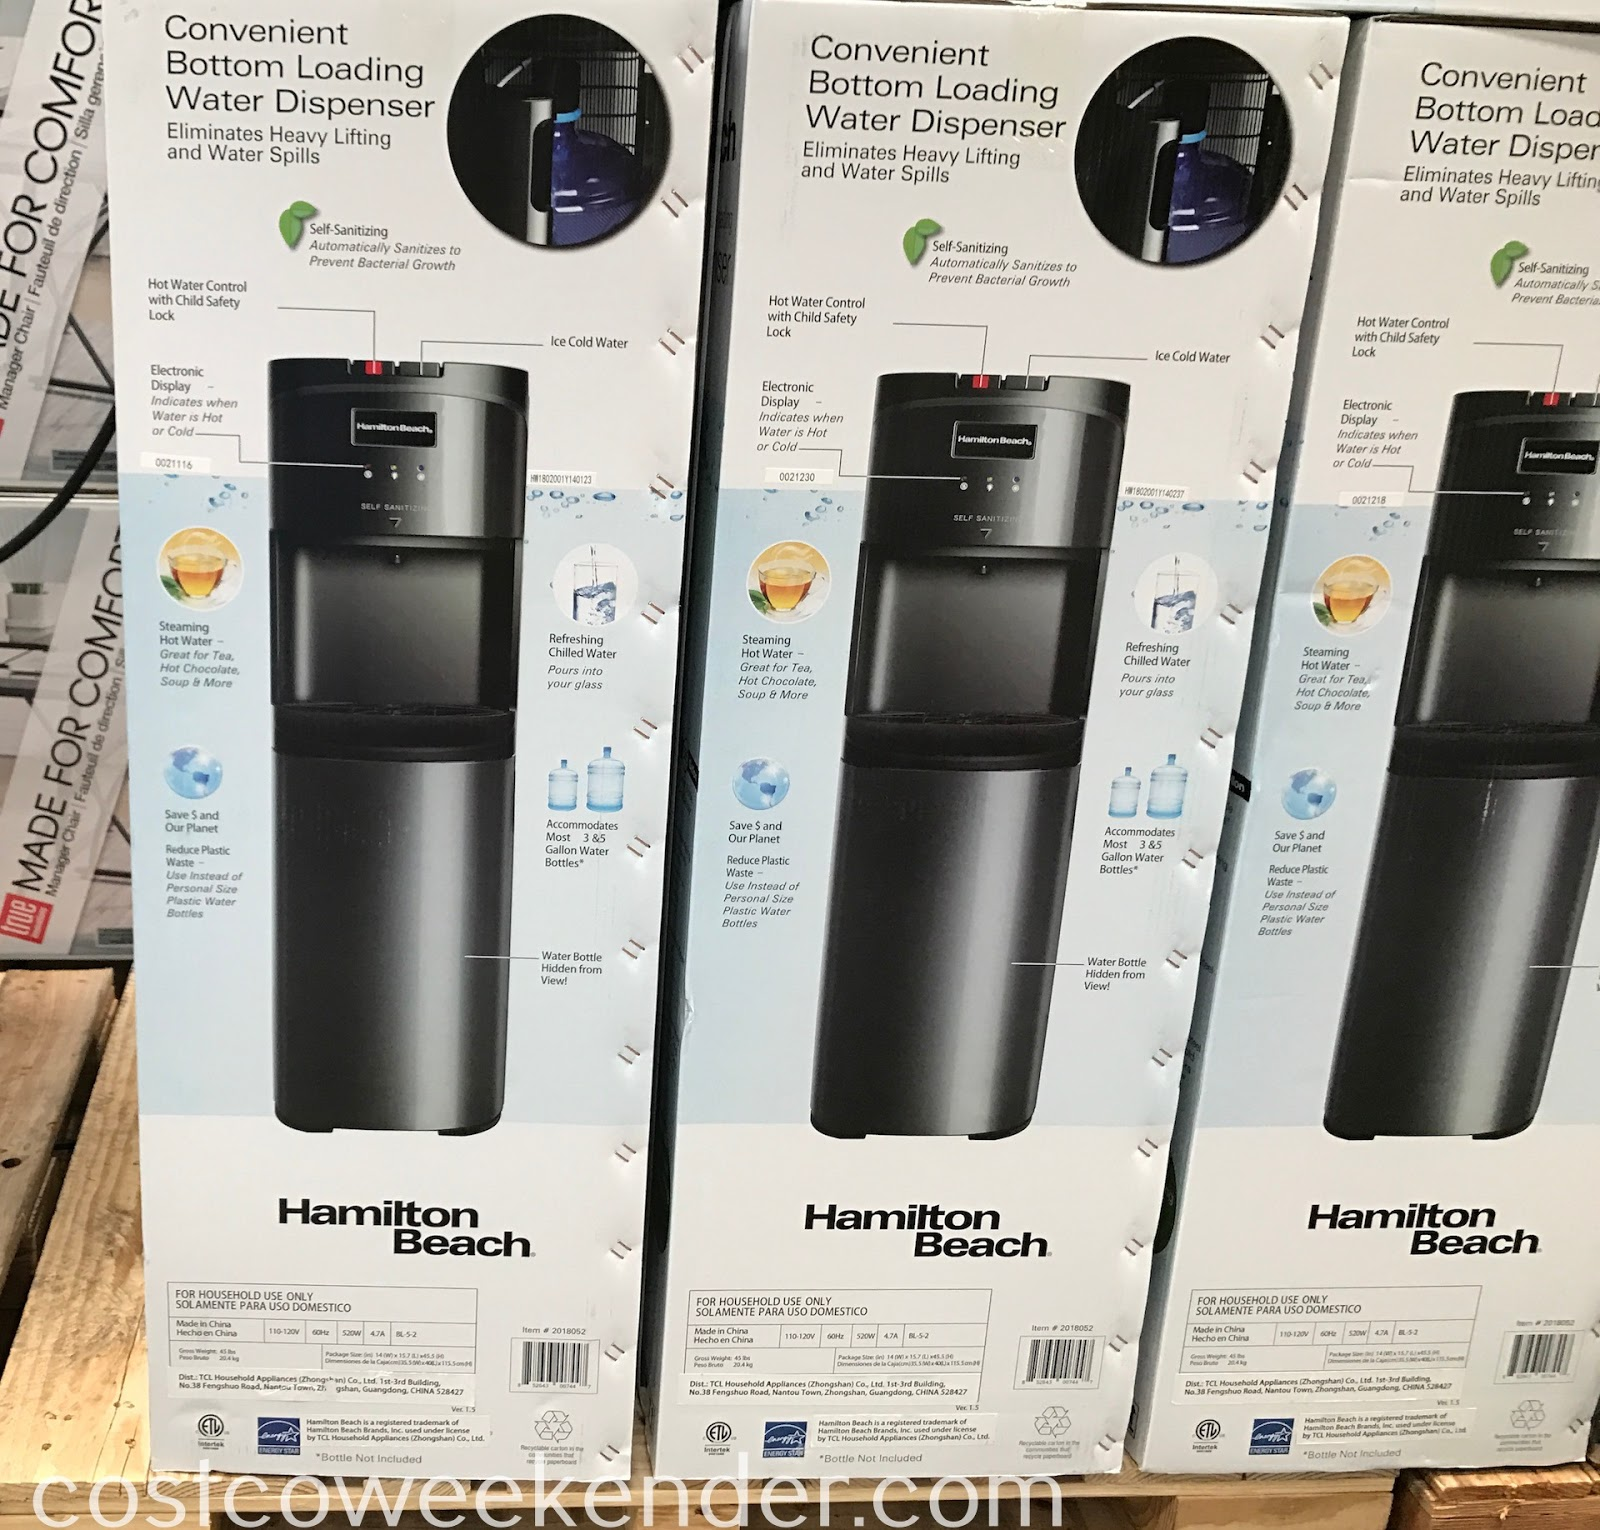 Costco 2018052 - Hamilton Beach Bottom Loading Water Dispenser: great for any home